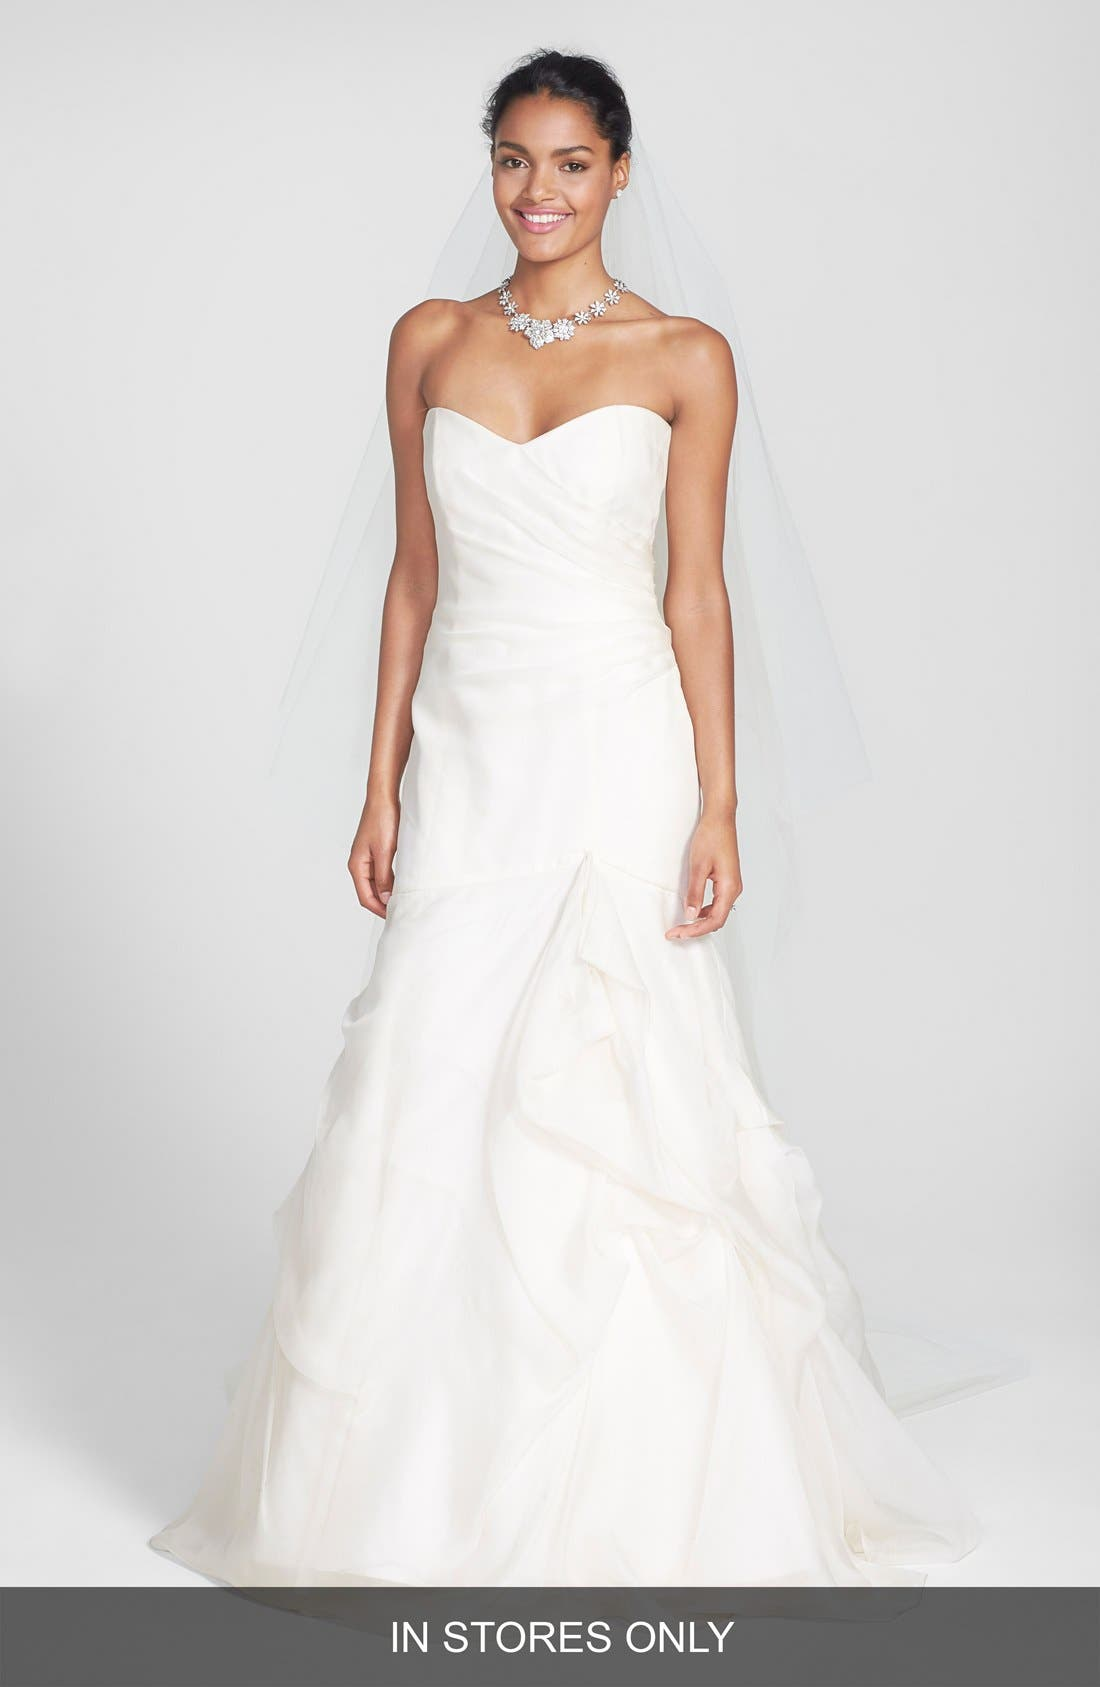 Main Image - BLISS Monique Lhuillier Strapless Silk Organza Mermaid Wedding Dress (In Stores Only)